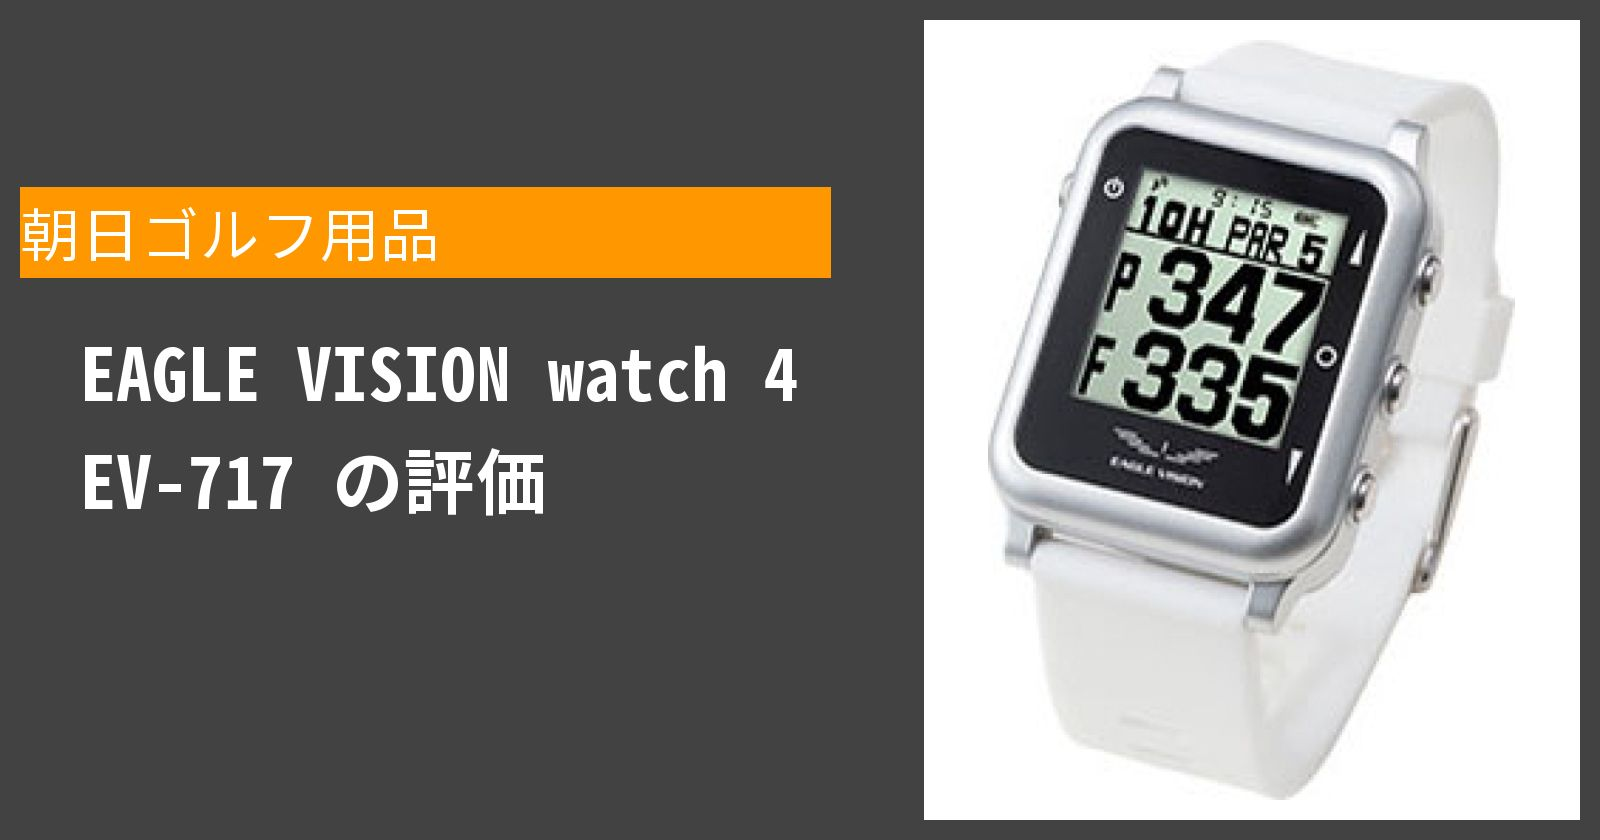 EAGLE VISION watch 4 EV-717を徹底評価